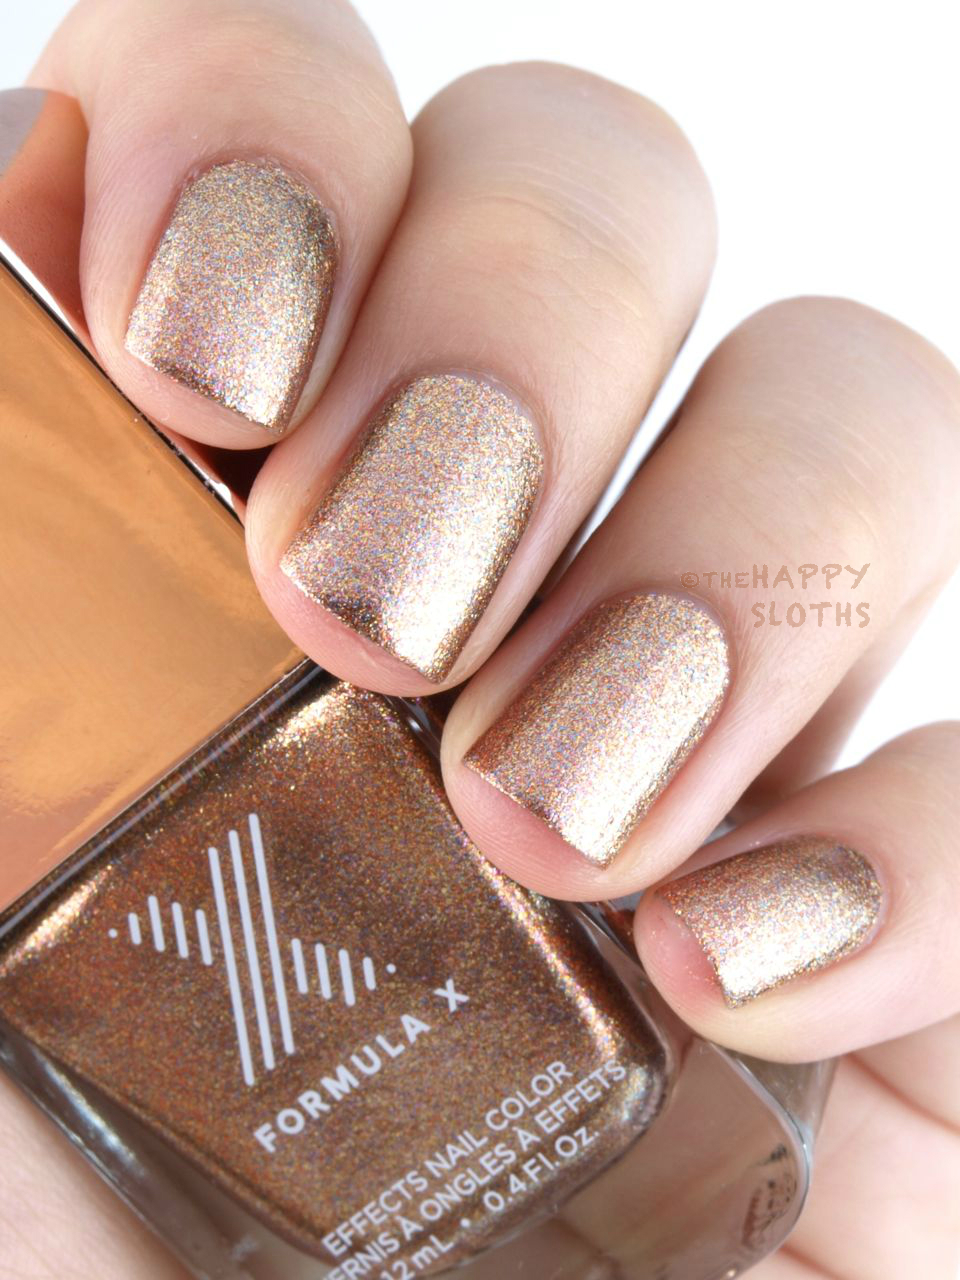 Formula X Effects Nail Color in \